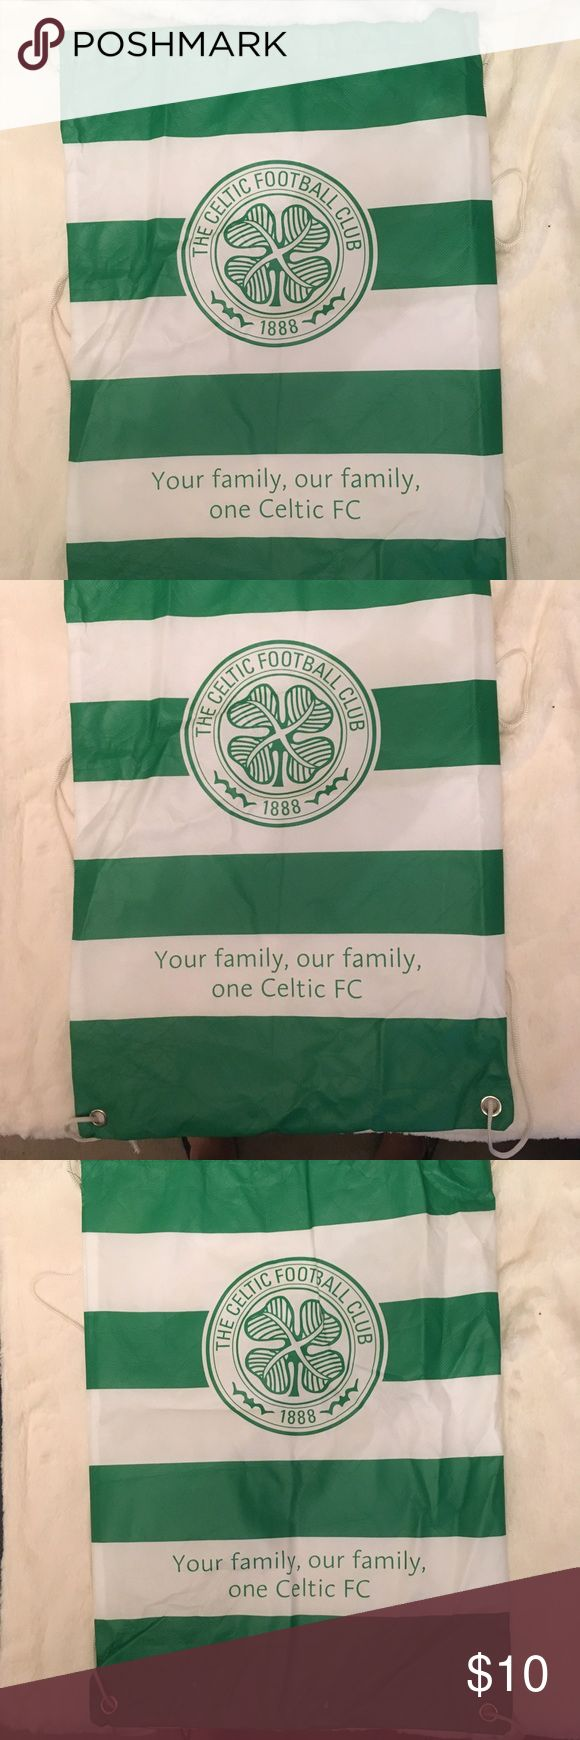 Celtic Football Club Drawstring Backpack Celtic Football Club Drawstring Backpack. Small surface scratch noted in last pic. Overall in great condition. Bags